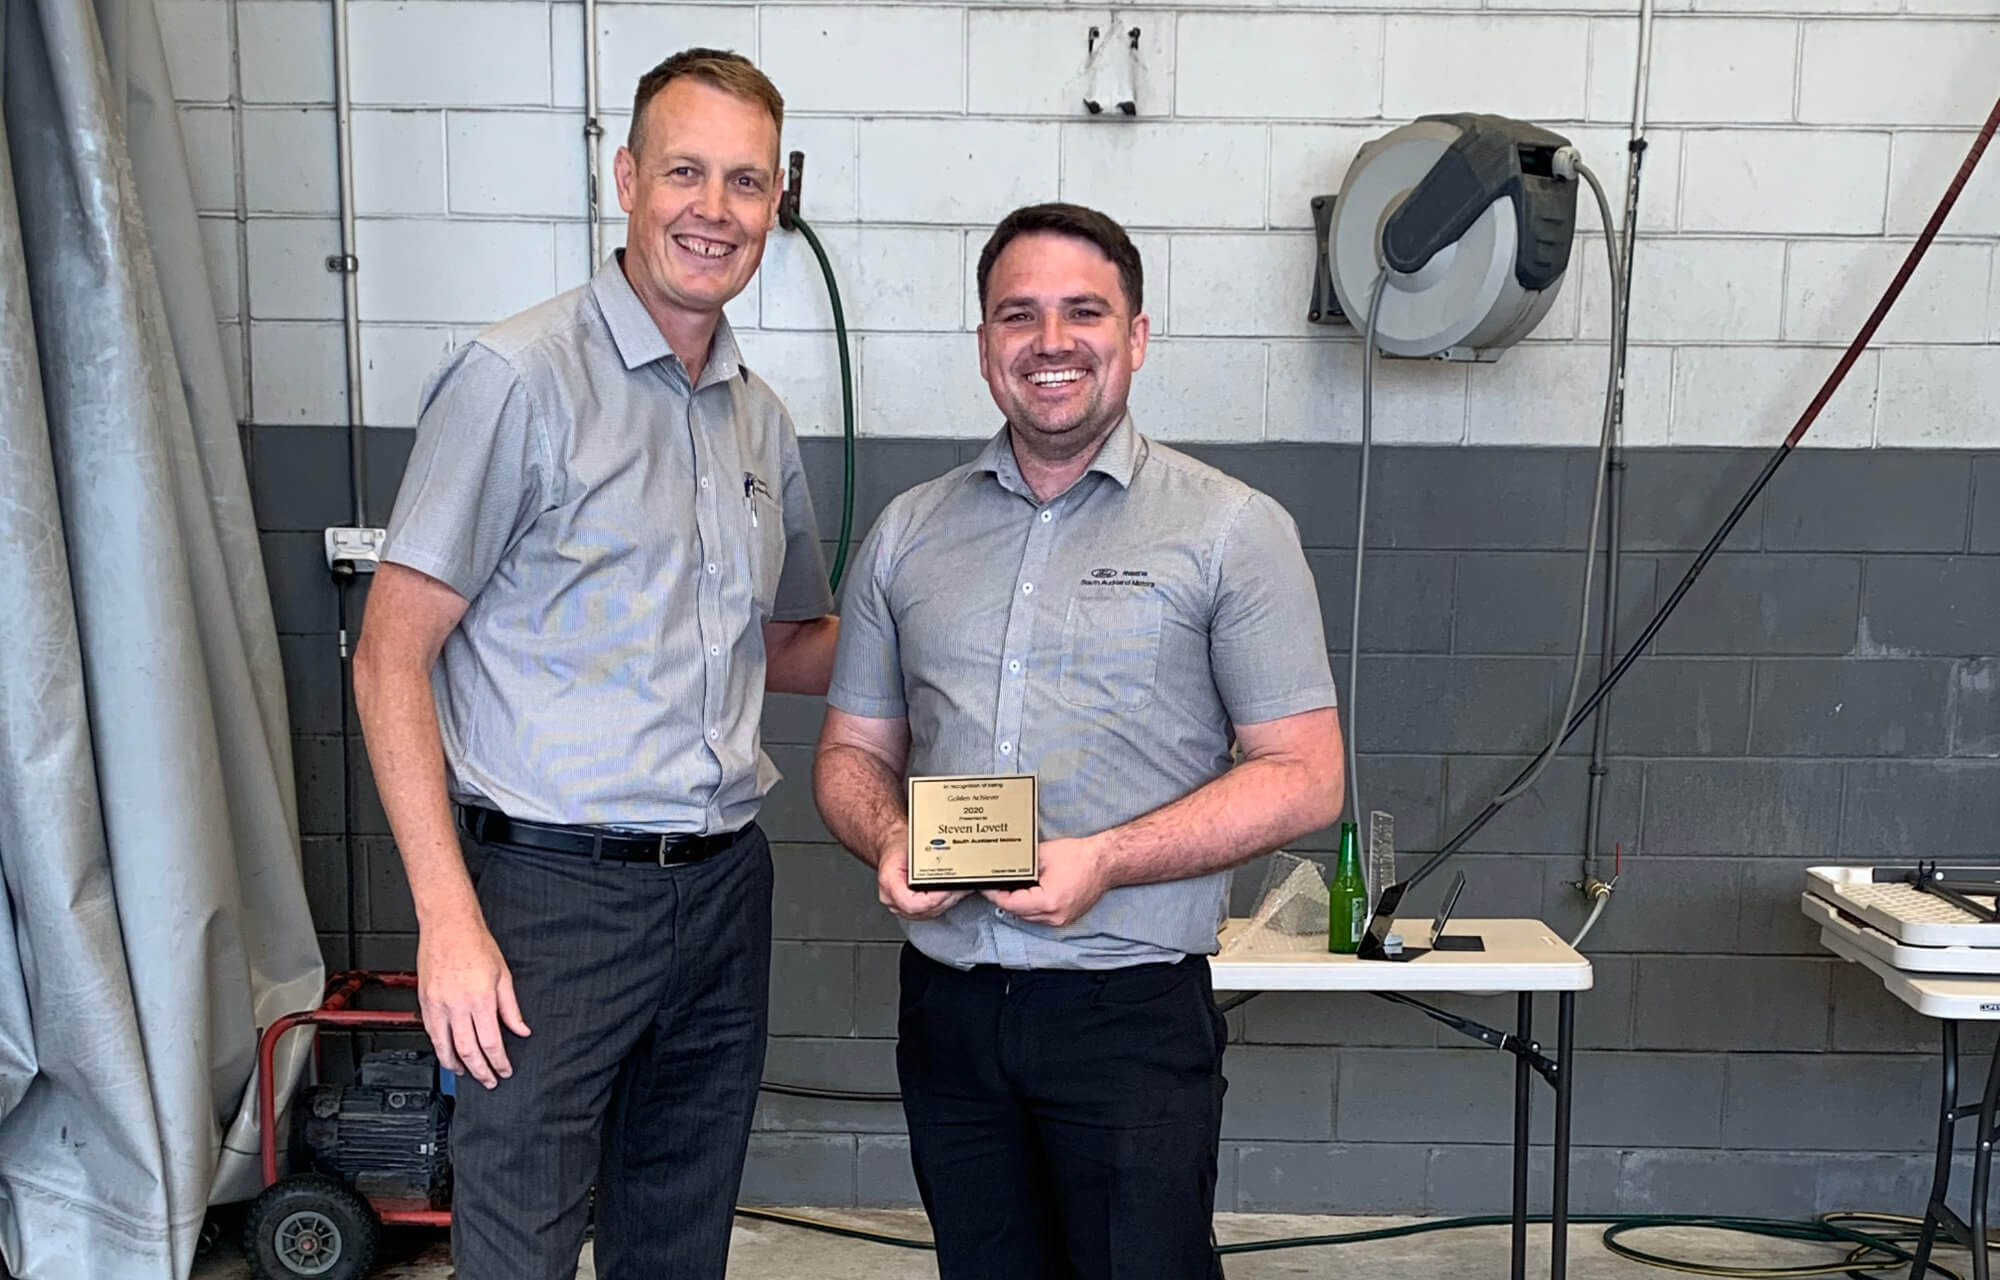 South Auckland Motors celebrates our hardworking team with an award ceremony/lunch